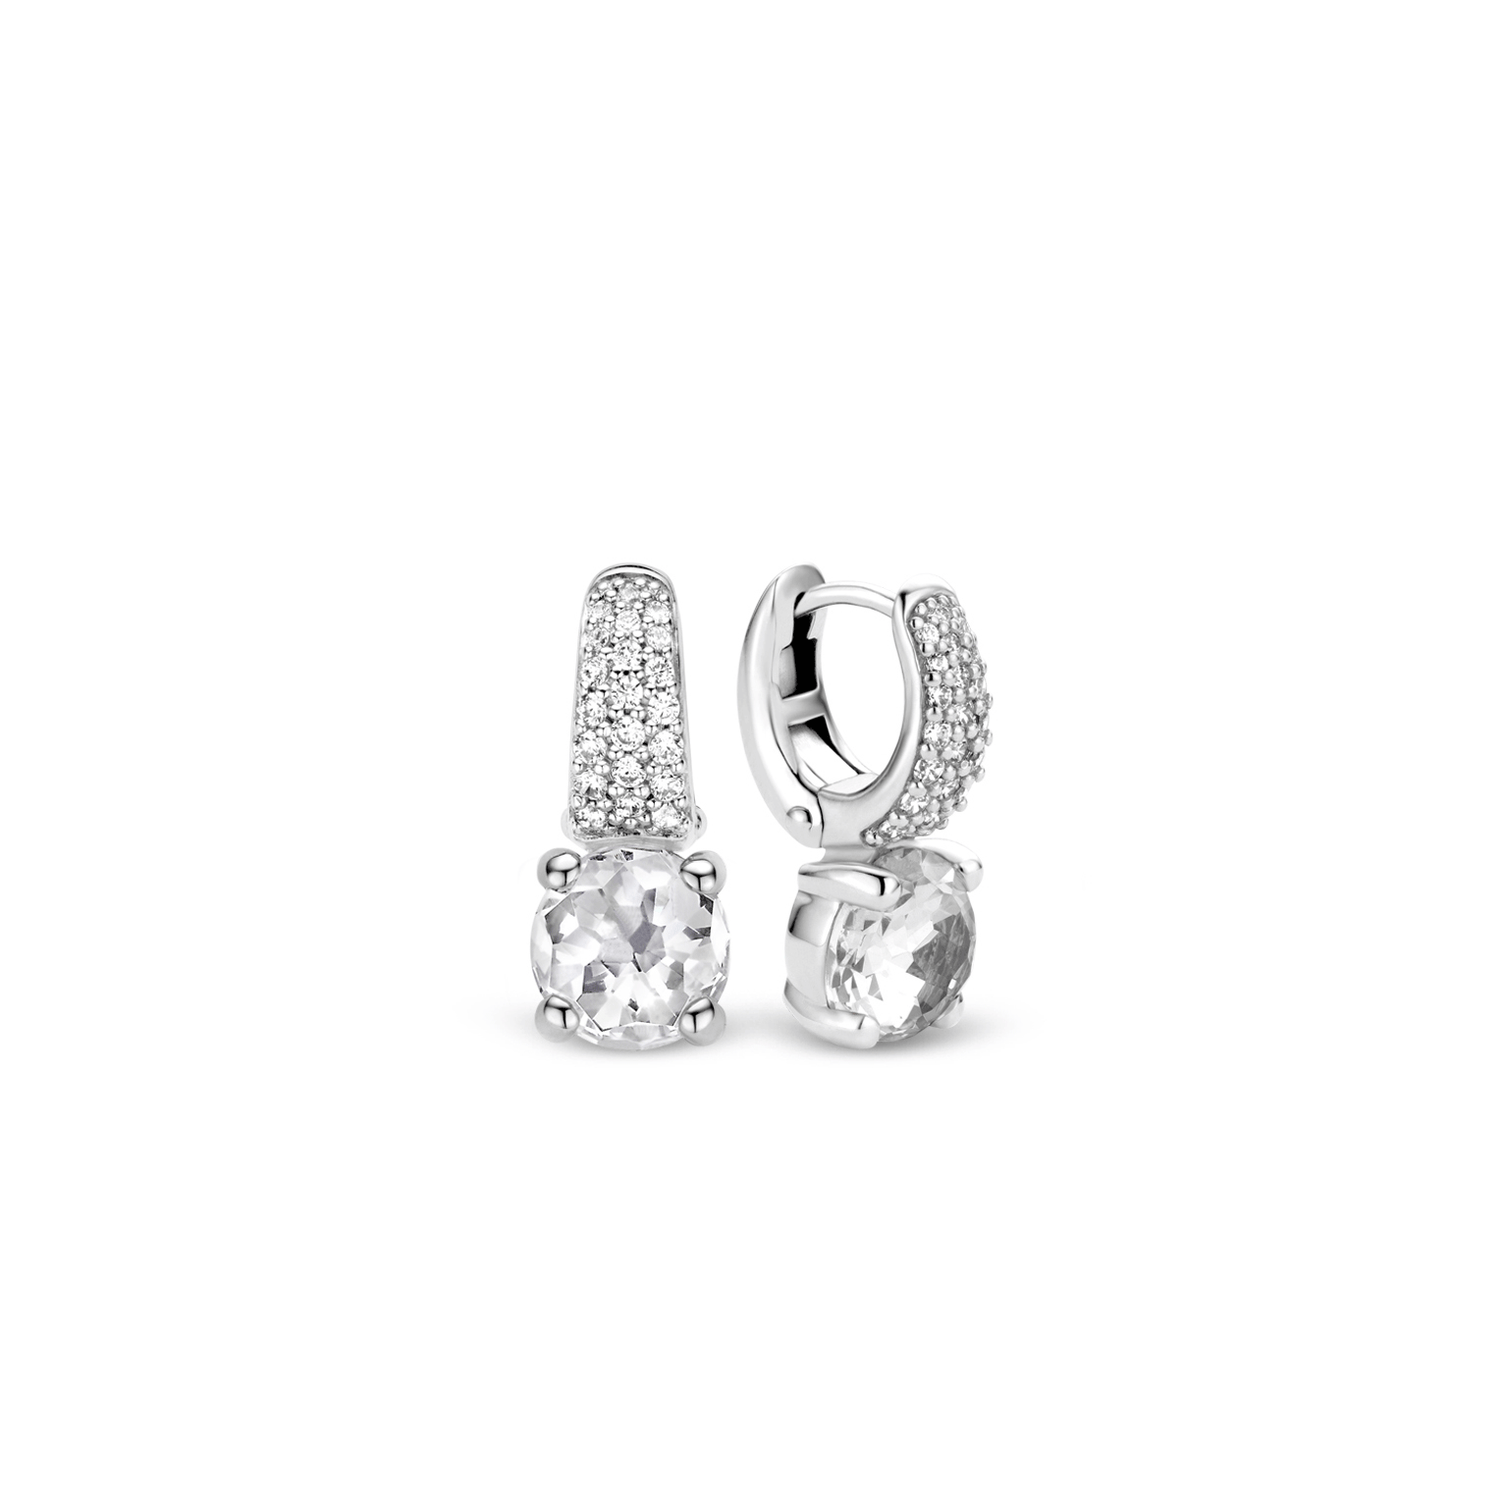 TI SENTO - Milano Earrings 7752ZI